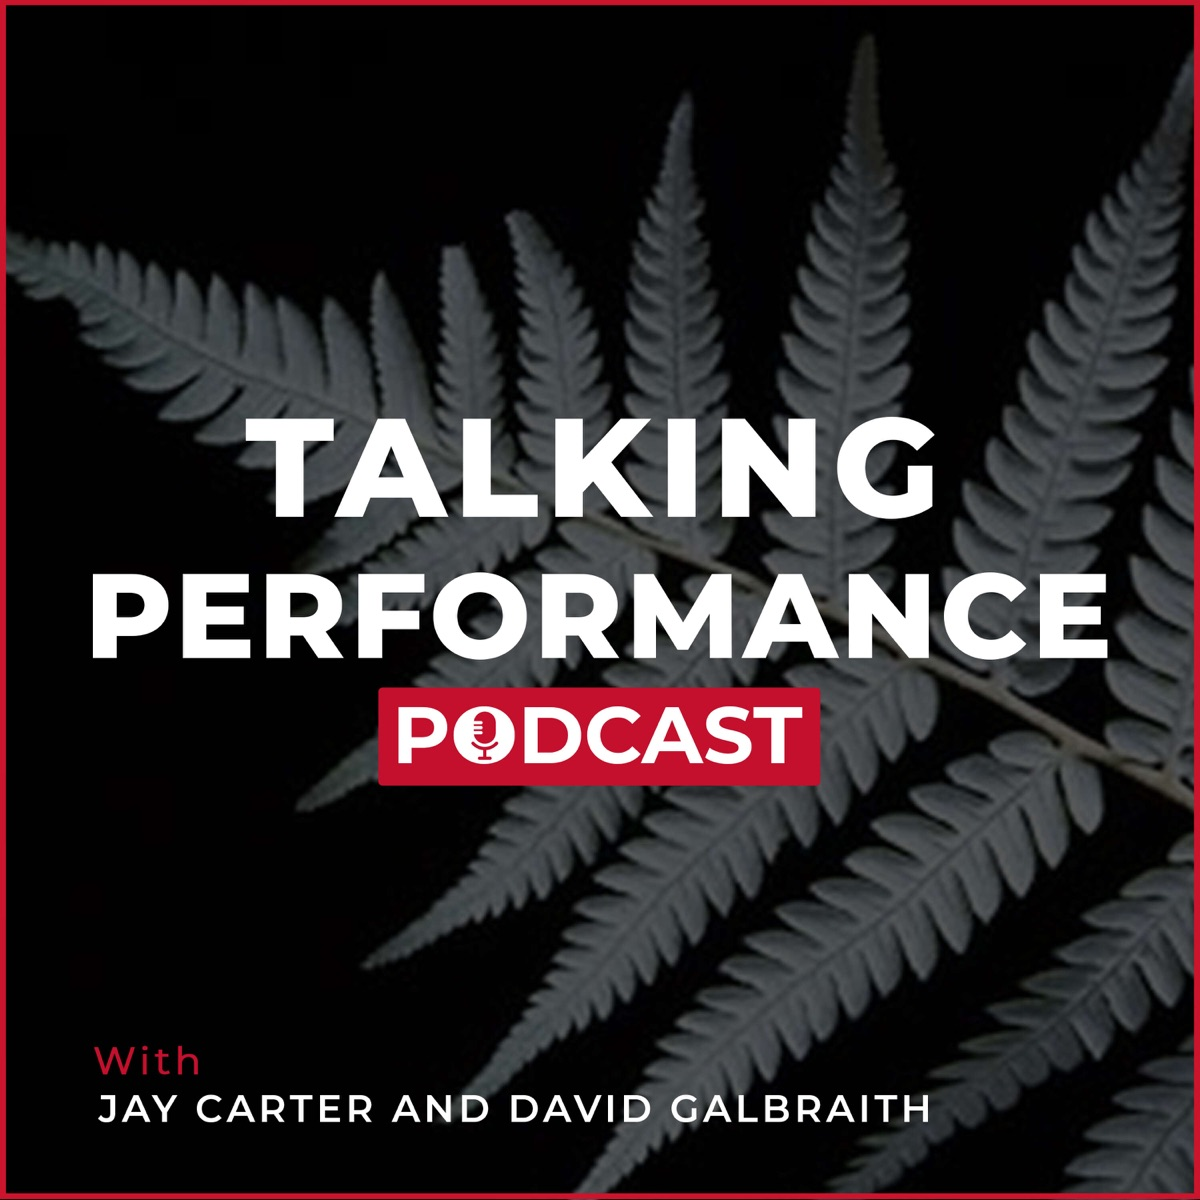 Talking Performance Episode 18 Reflection of Tony Philp Session